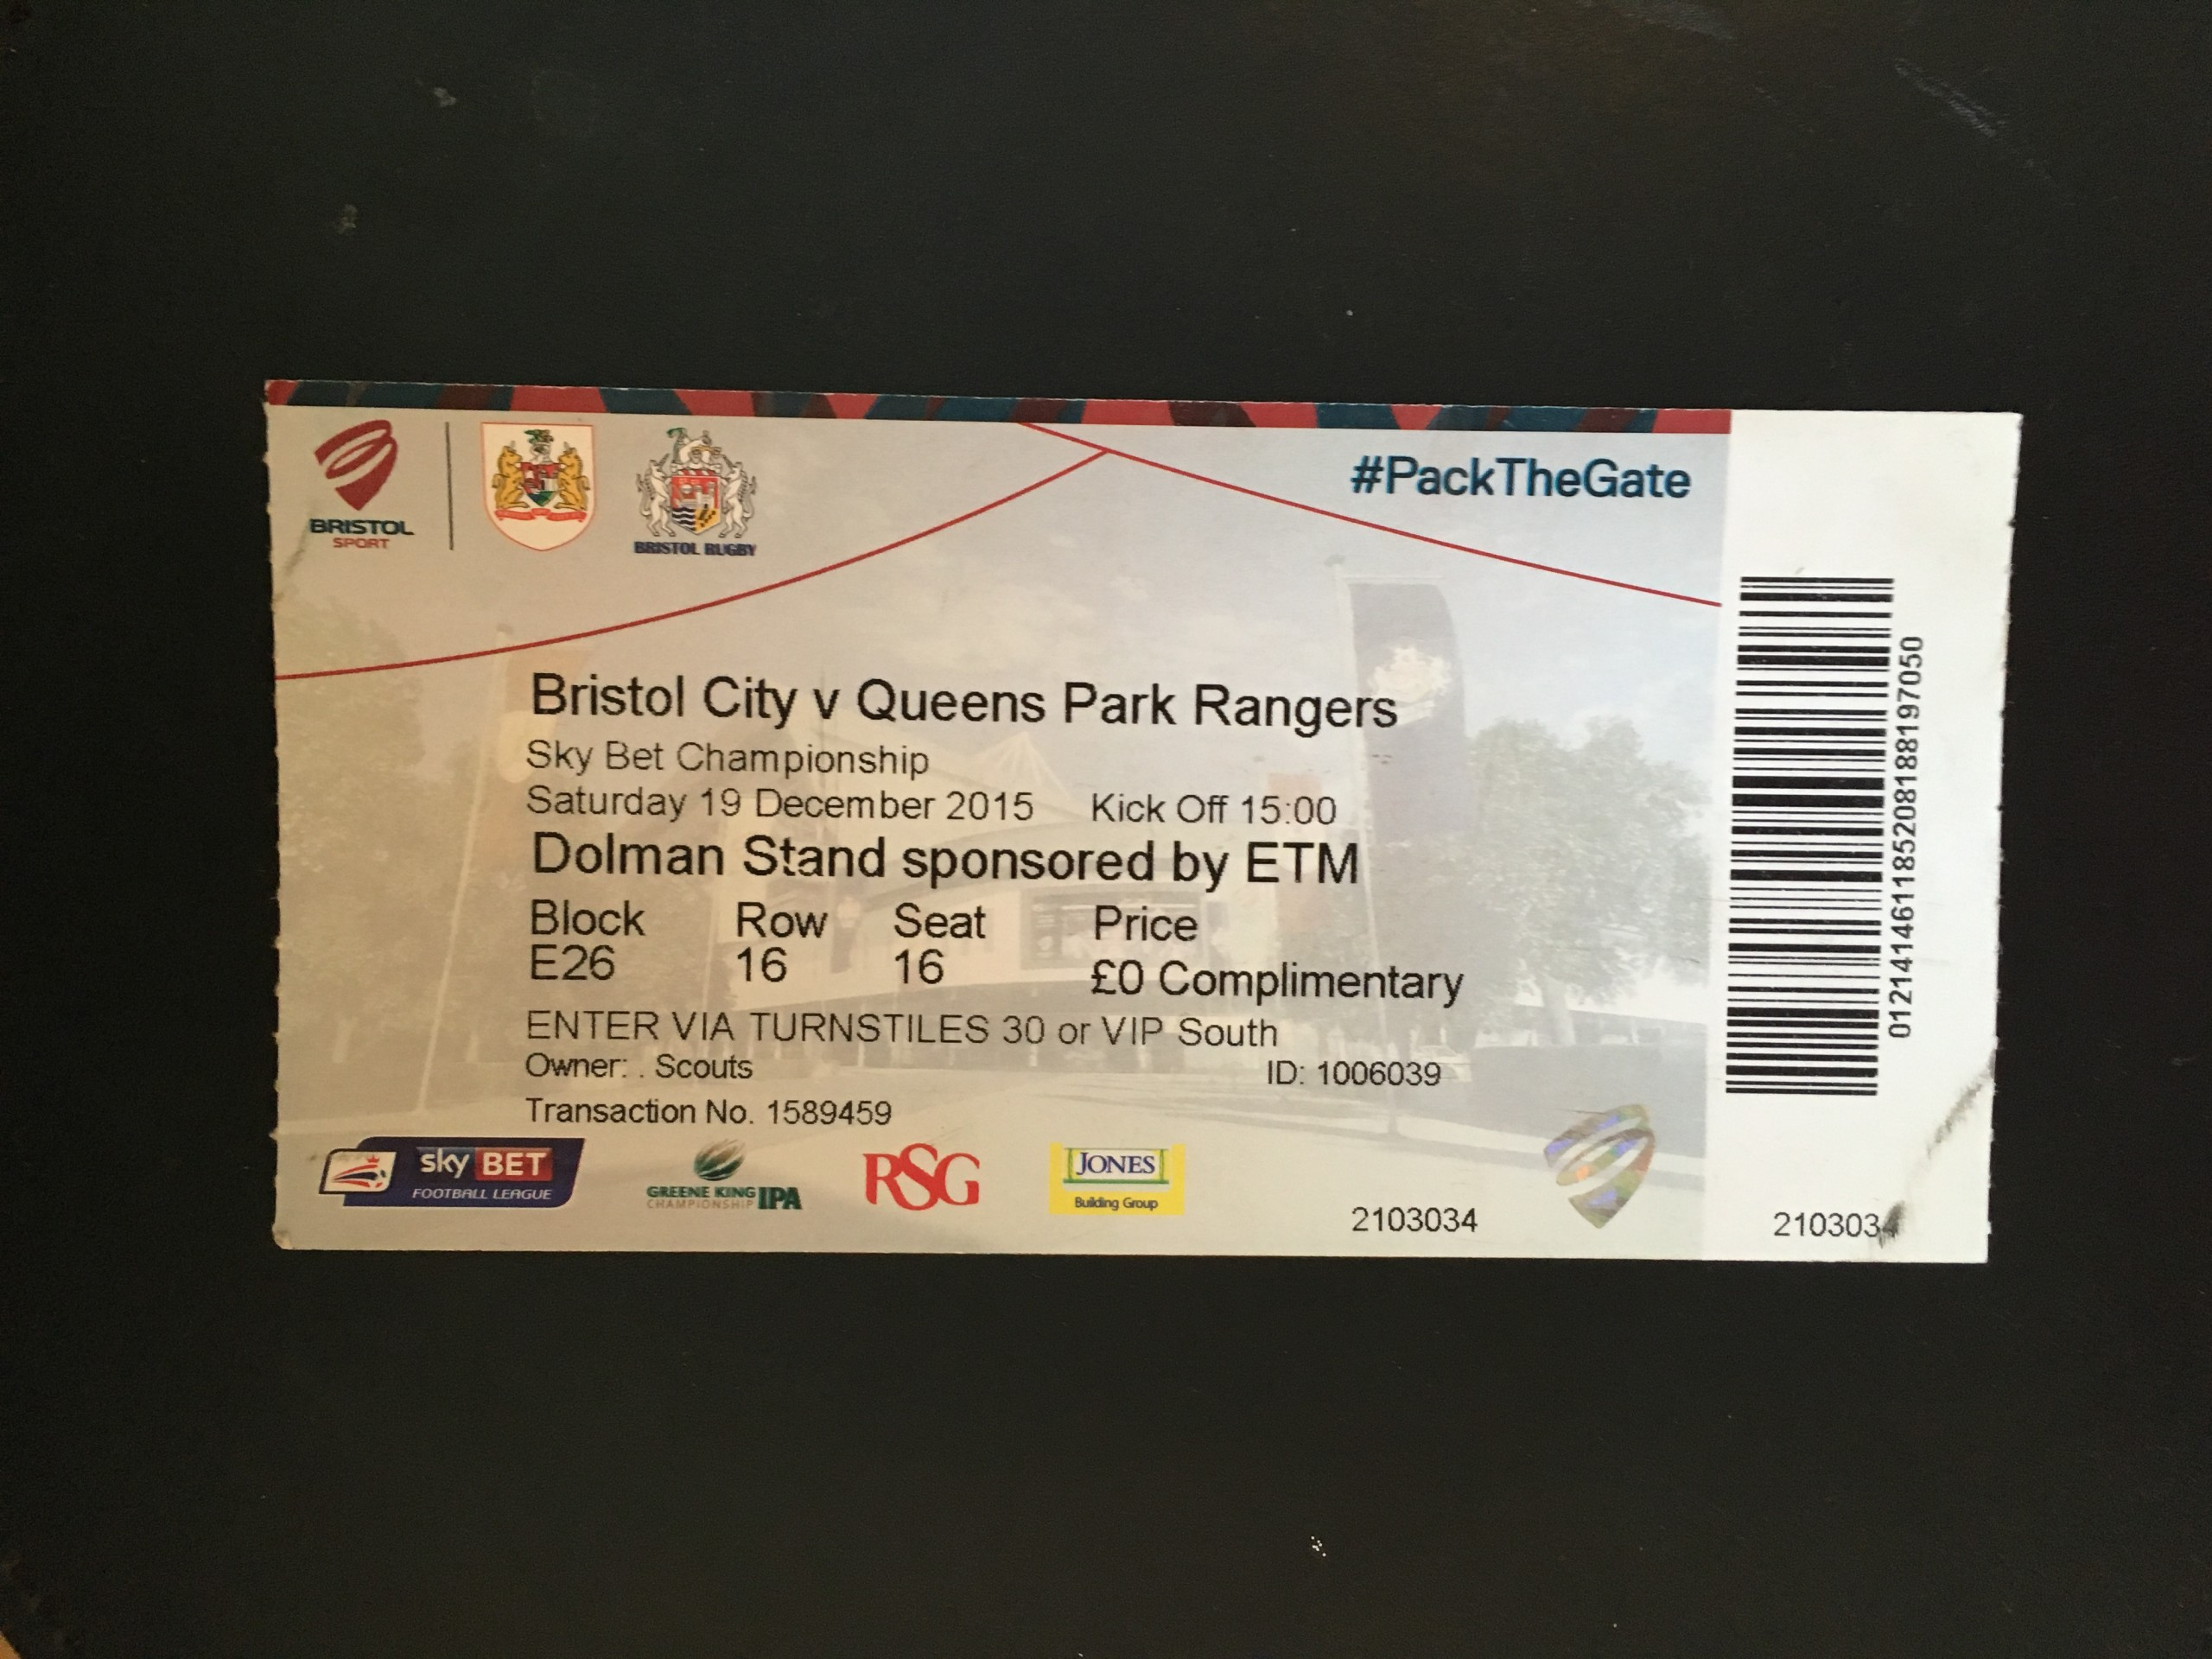 Bristol City v Queens Park Rangers 19-12-2015 Ticket